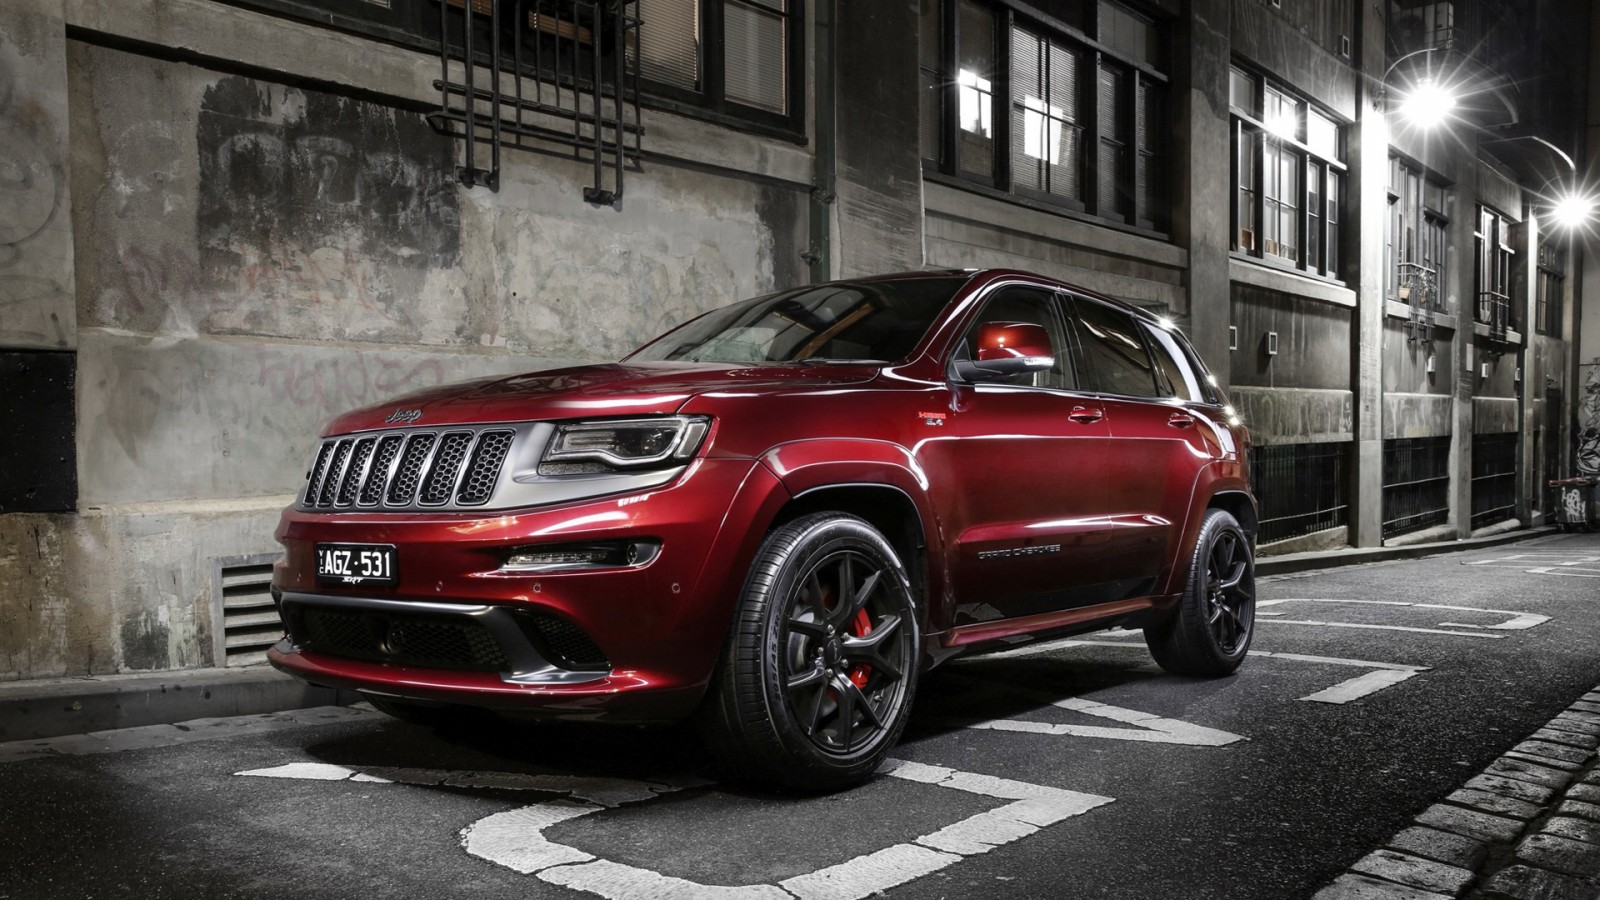 Hummer Car Images For Wallpaper 2016 Jeep Grand Cherokee Srt Night Limited Edition